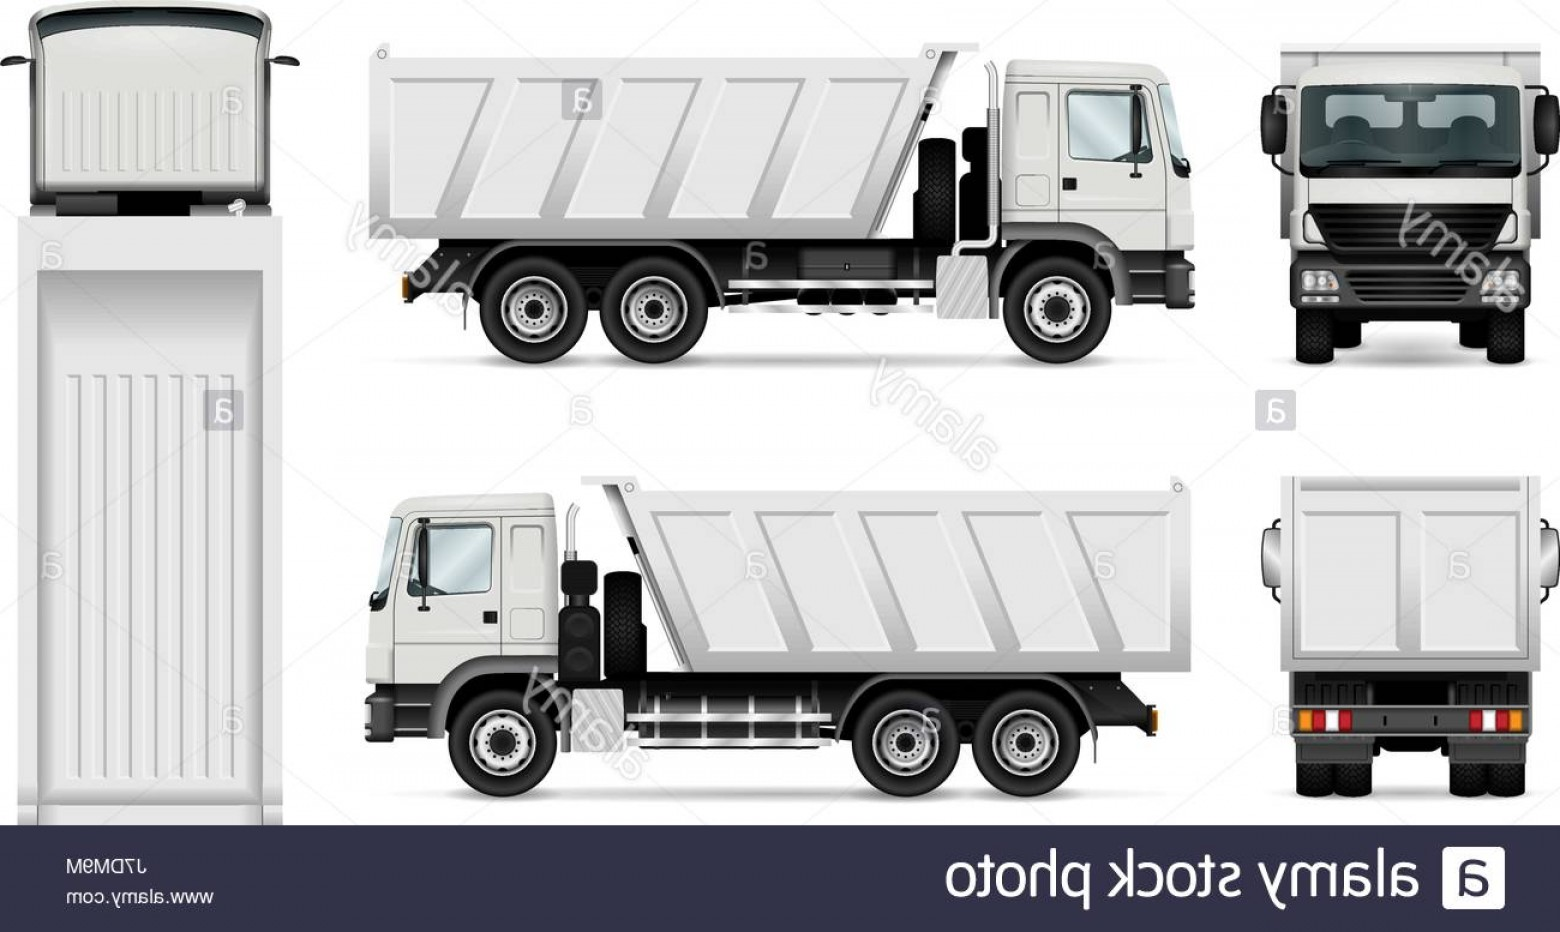 Dump Truck Vector Black And White: Stock Photo Vector Dump Truck Isolated White Tipper Lorry All Elements In The